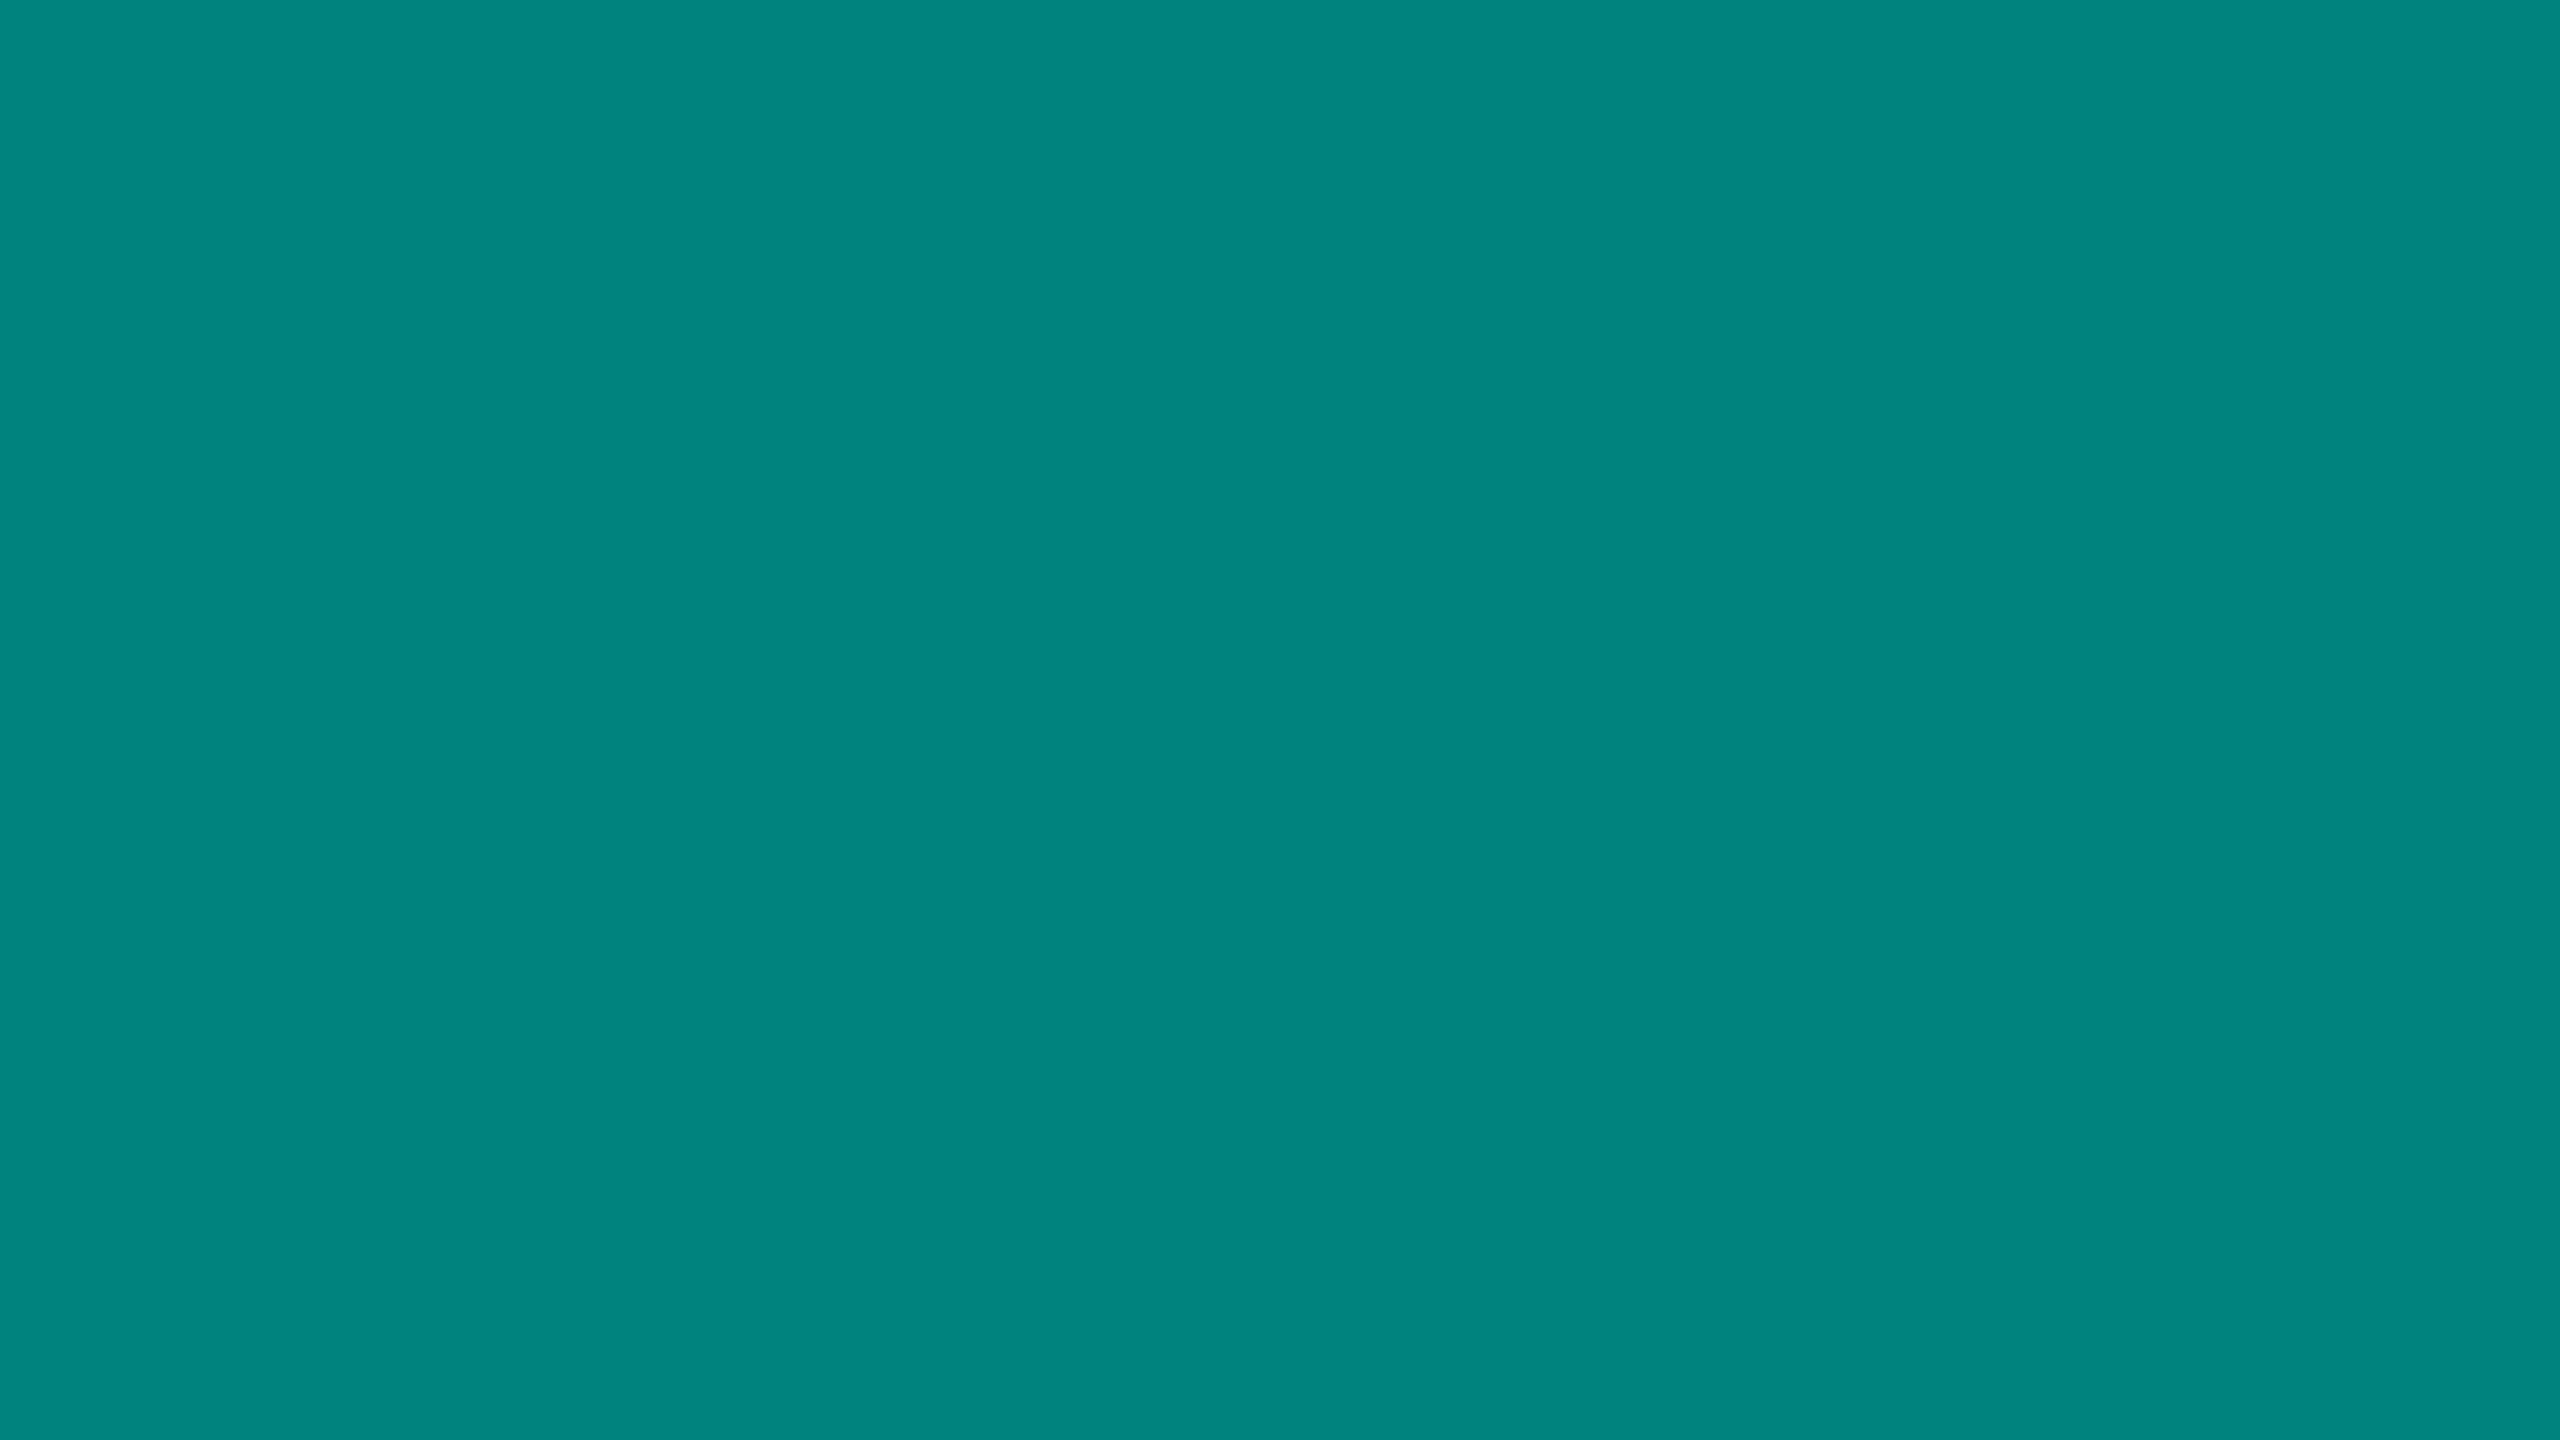 2560x1440 Wallpaper Hd 2560x1440 Teal Green Solid Color Background